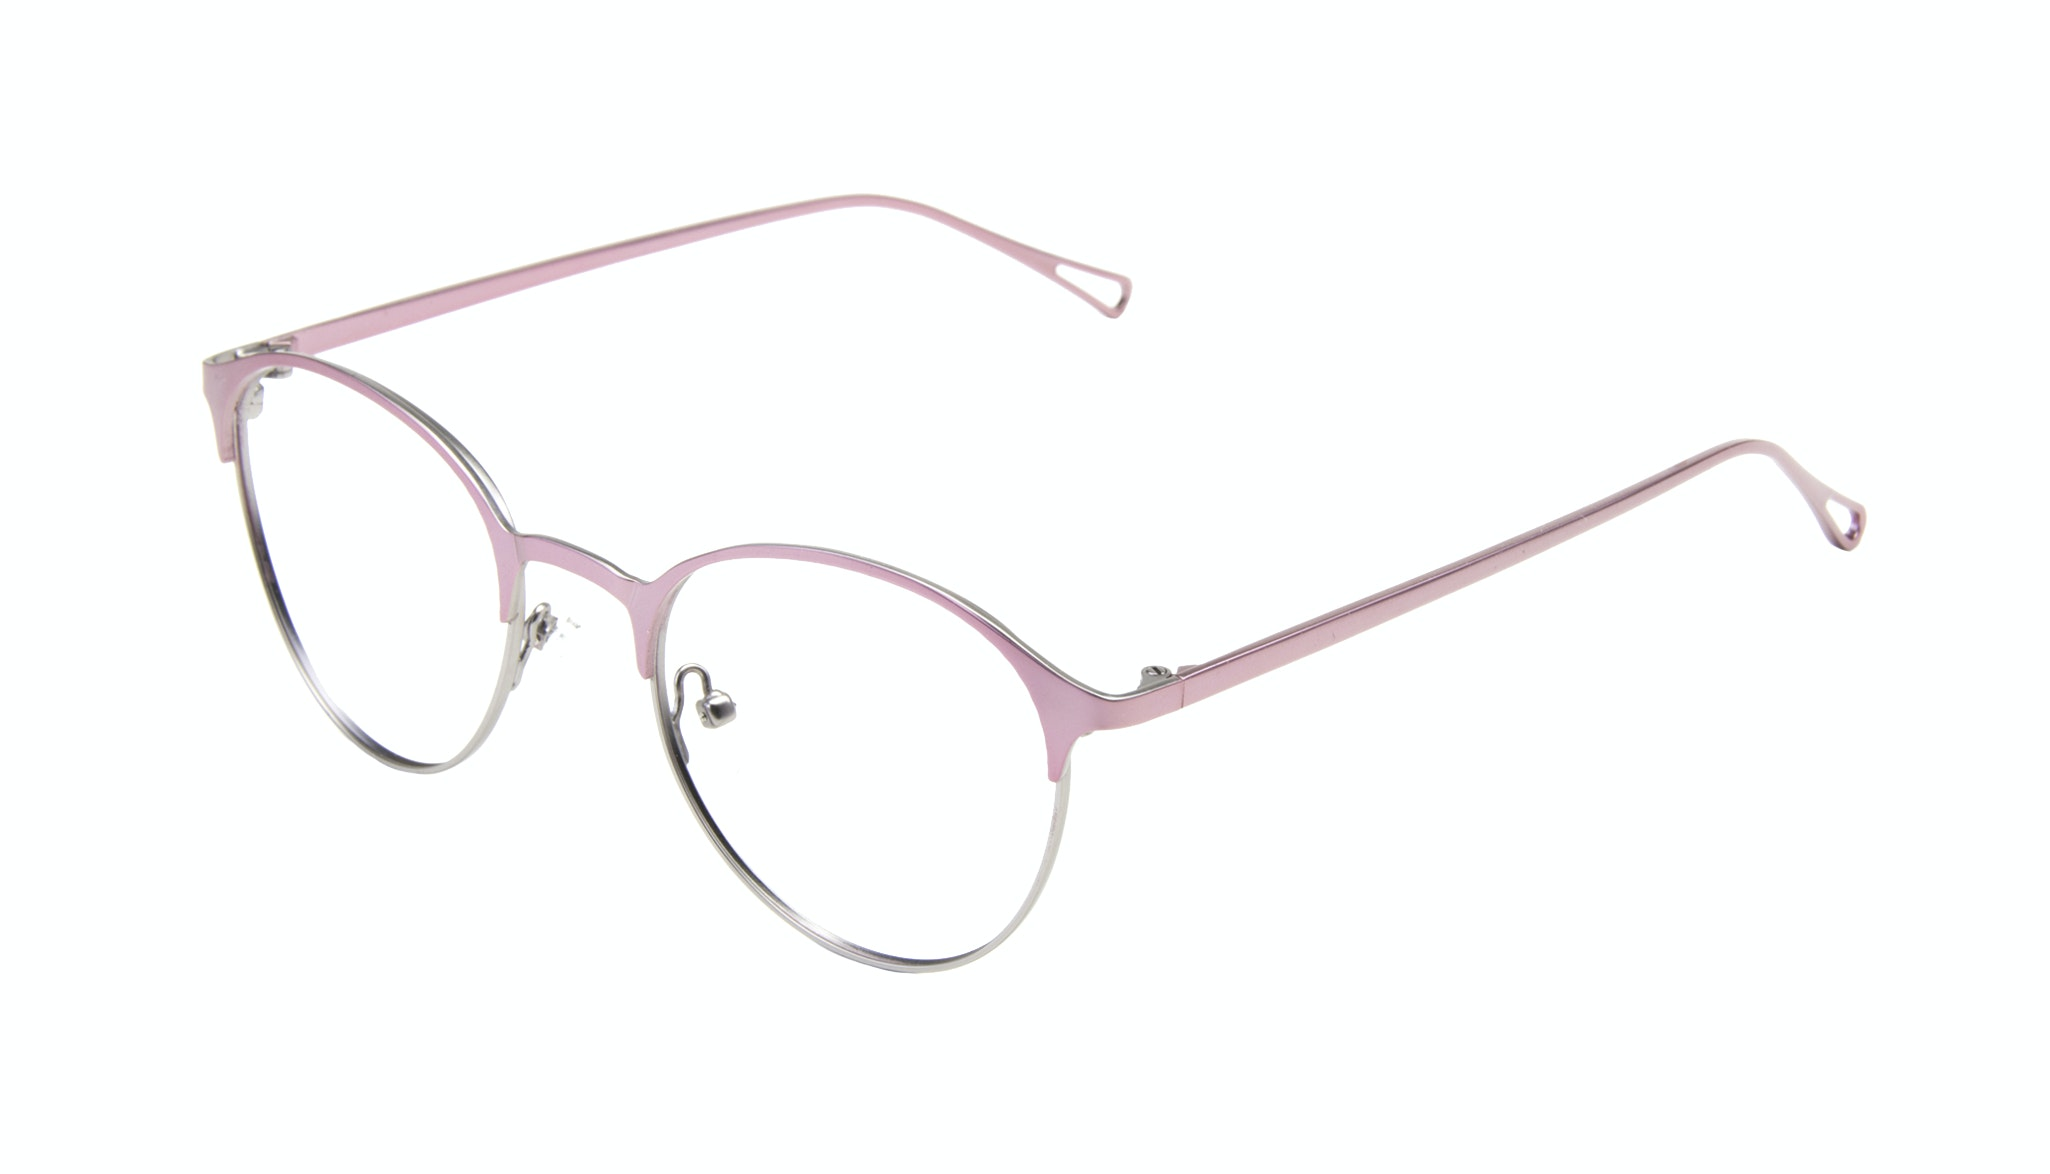 Affordable Fashion Glasses Round Eyeglasses Women Bay Shell Tilt